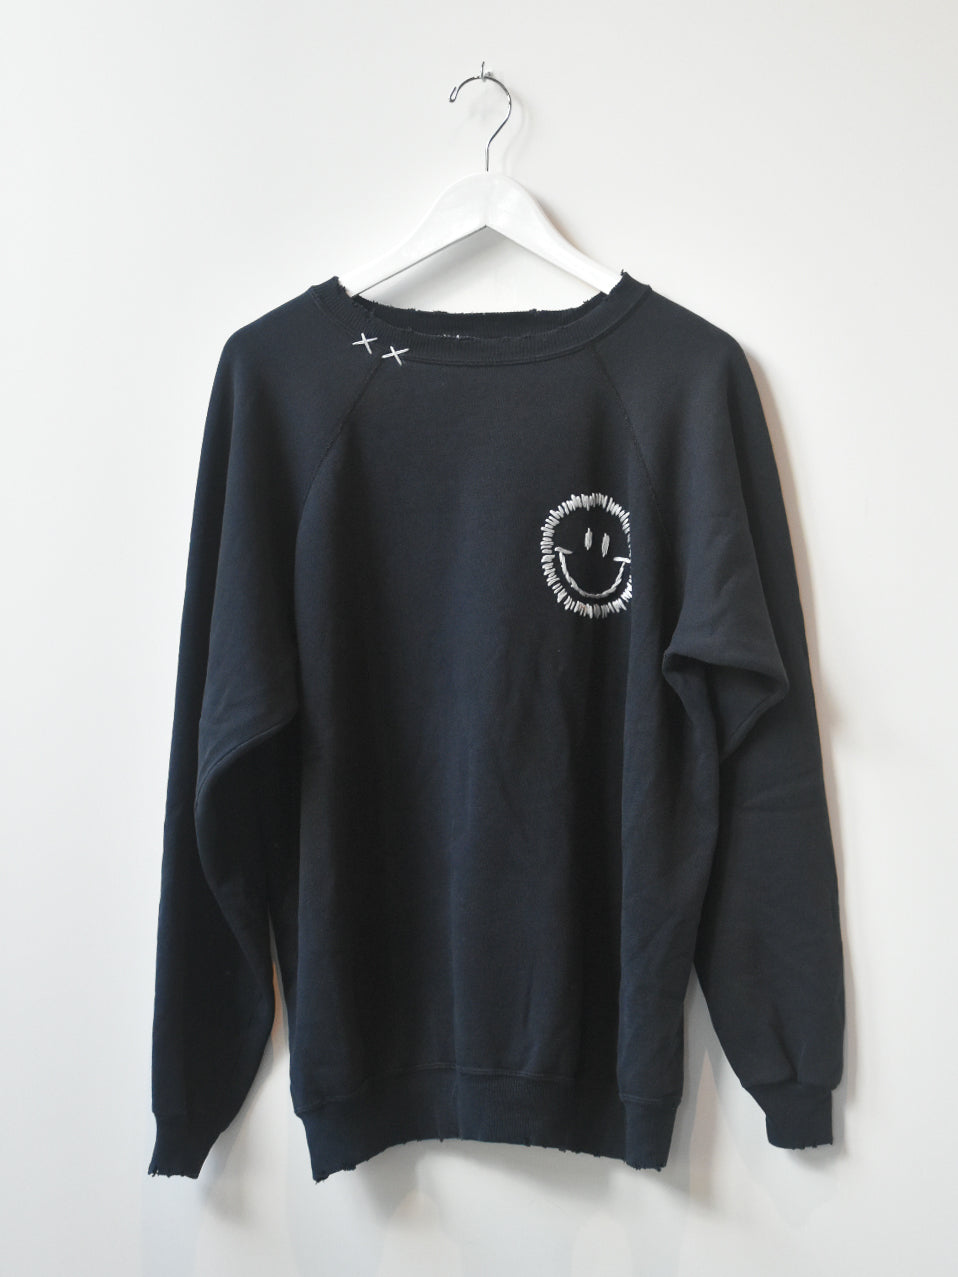 Happy Face Vintage Sweatshirt- Black